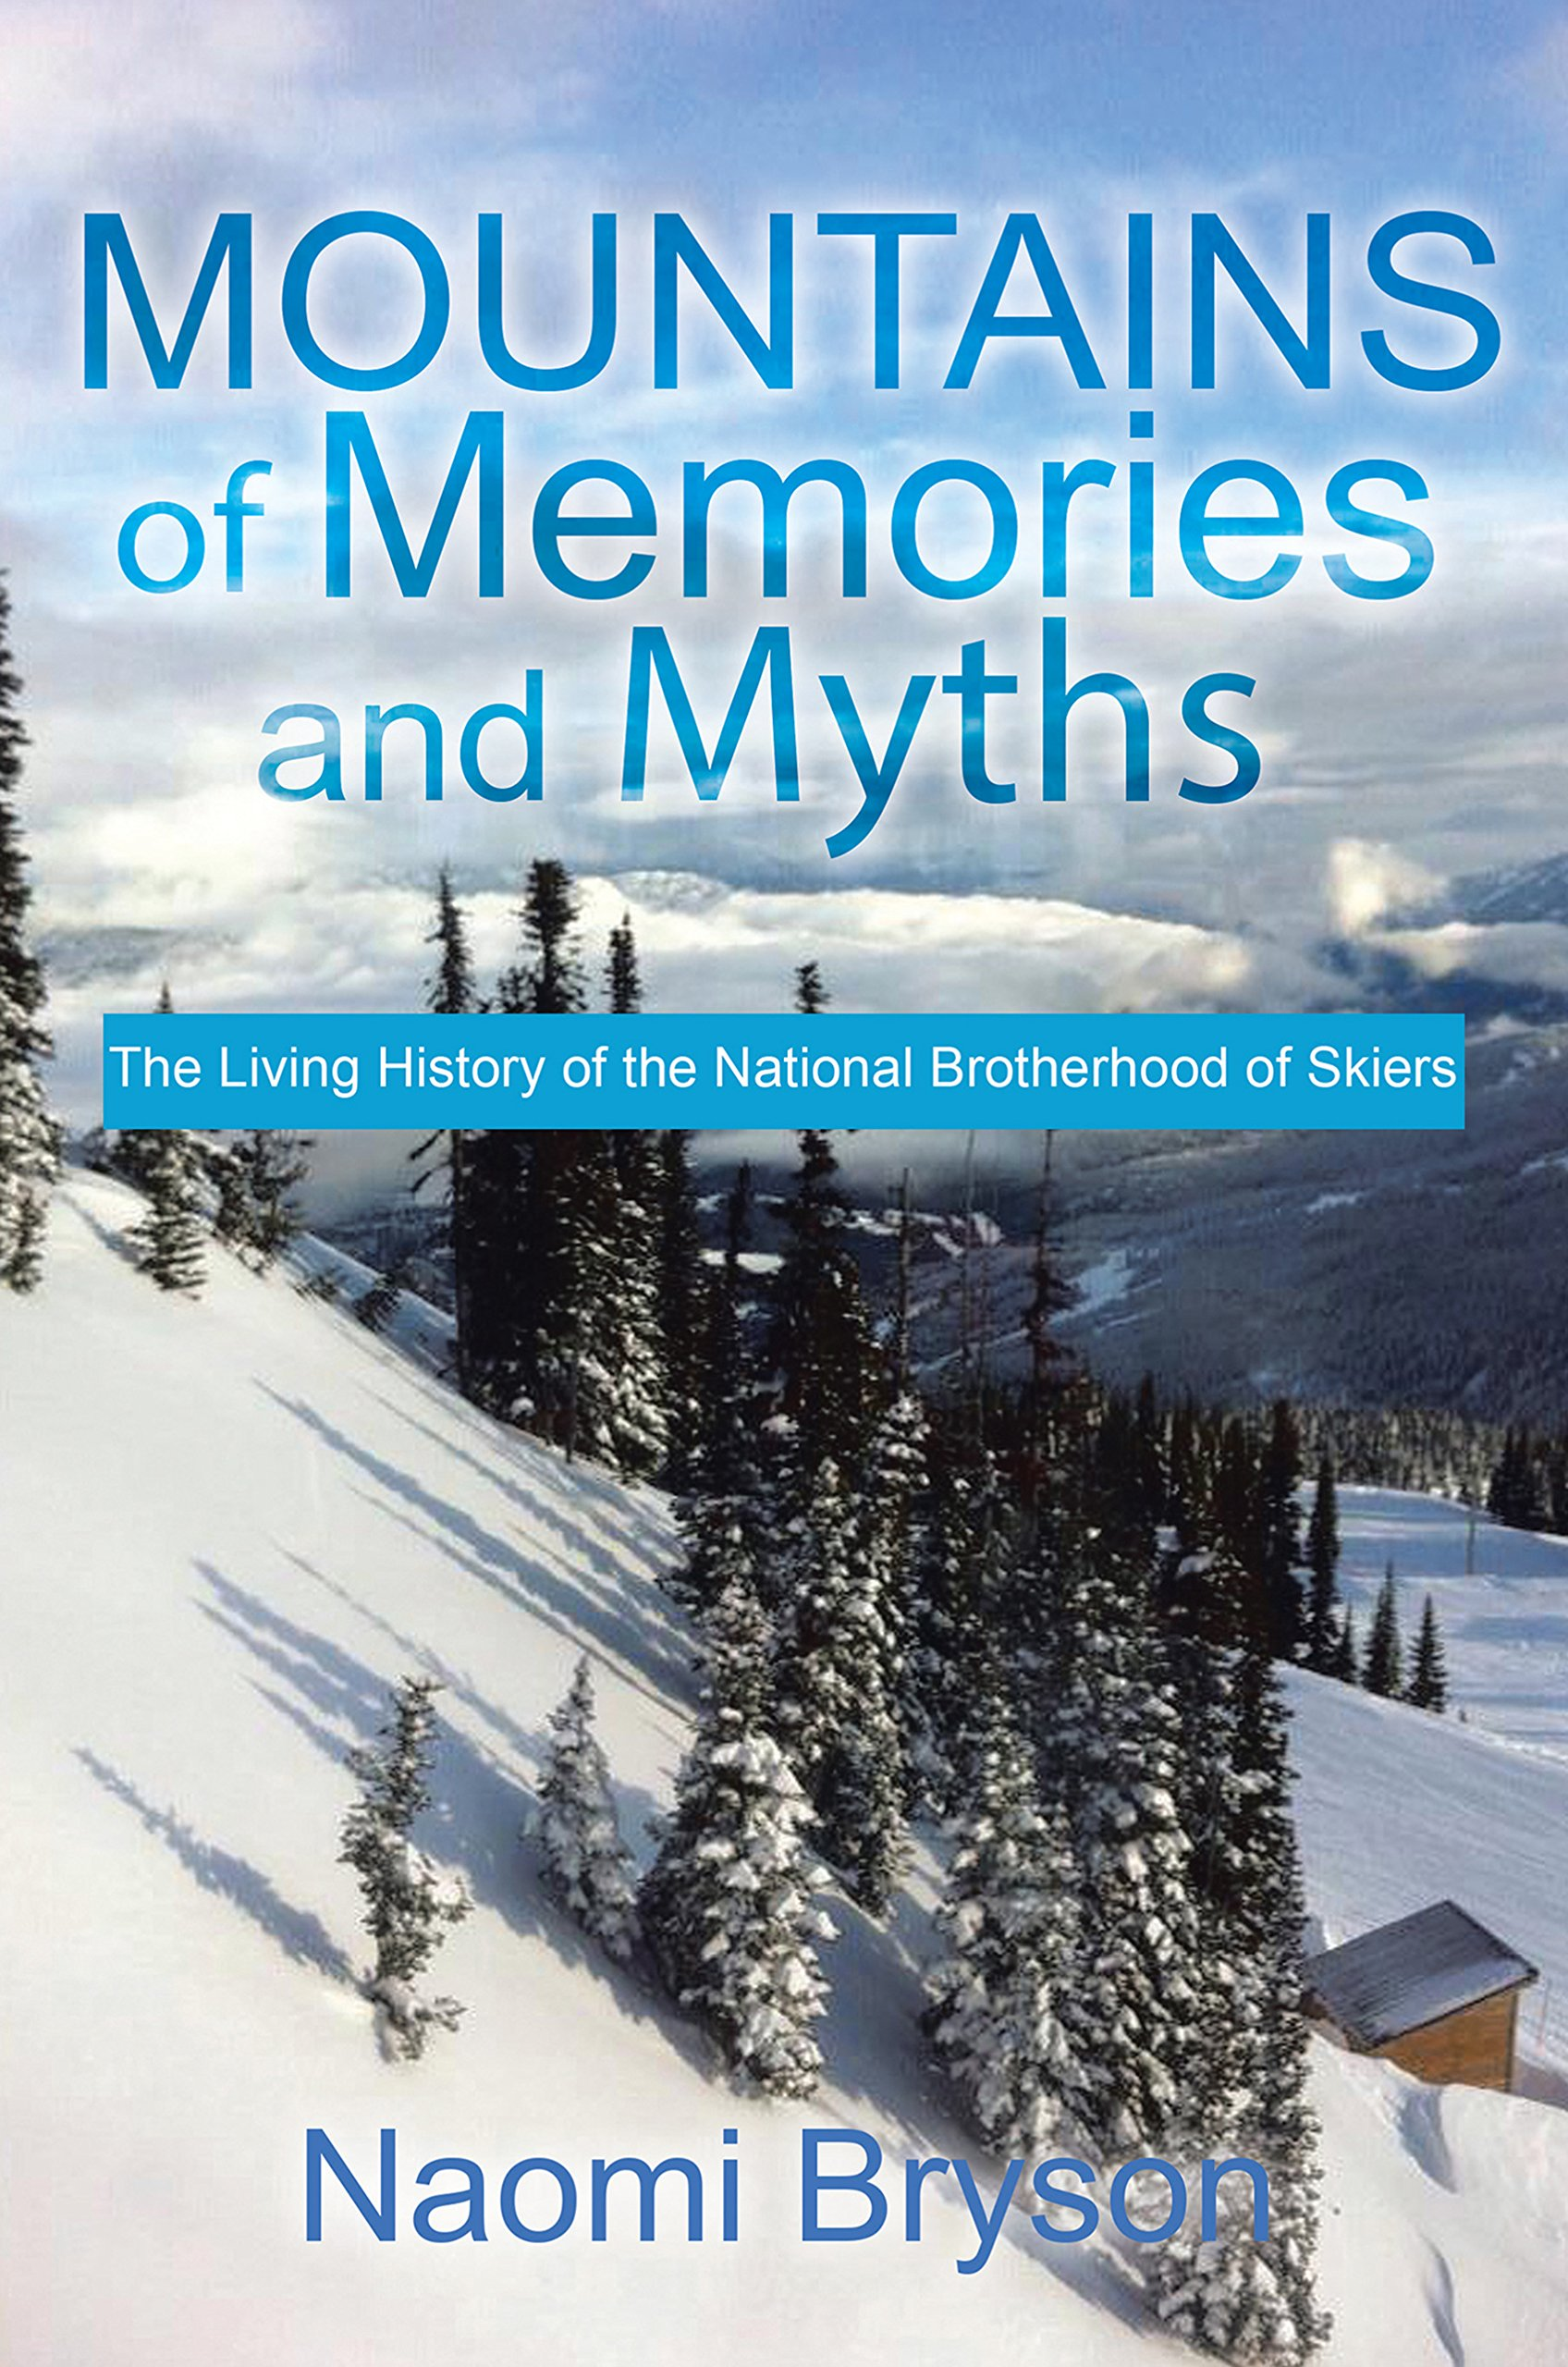 Download Mountains of Memories and Myths: The Living History of the National Brotherhood of Skiers (English Edition)